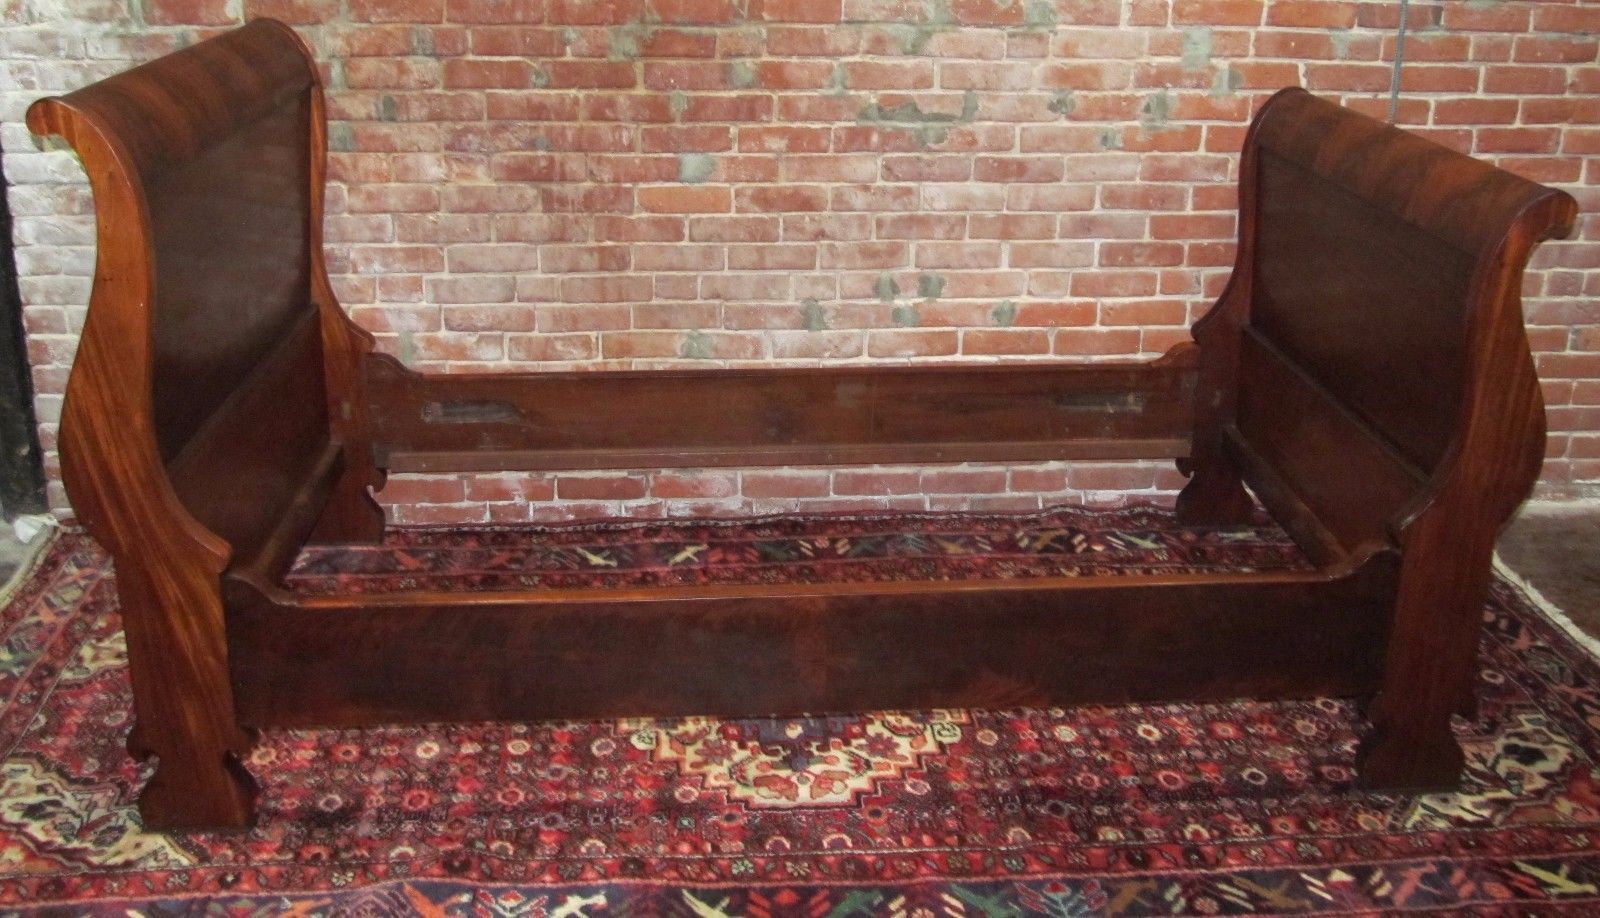 Antique Empire Sleigh Bed In Solid Mahogany Circa 1830 Ebay Sleigh Beds Solid Mahogany Antique Beds